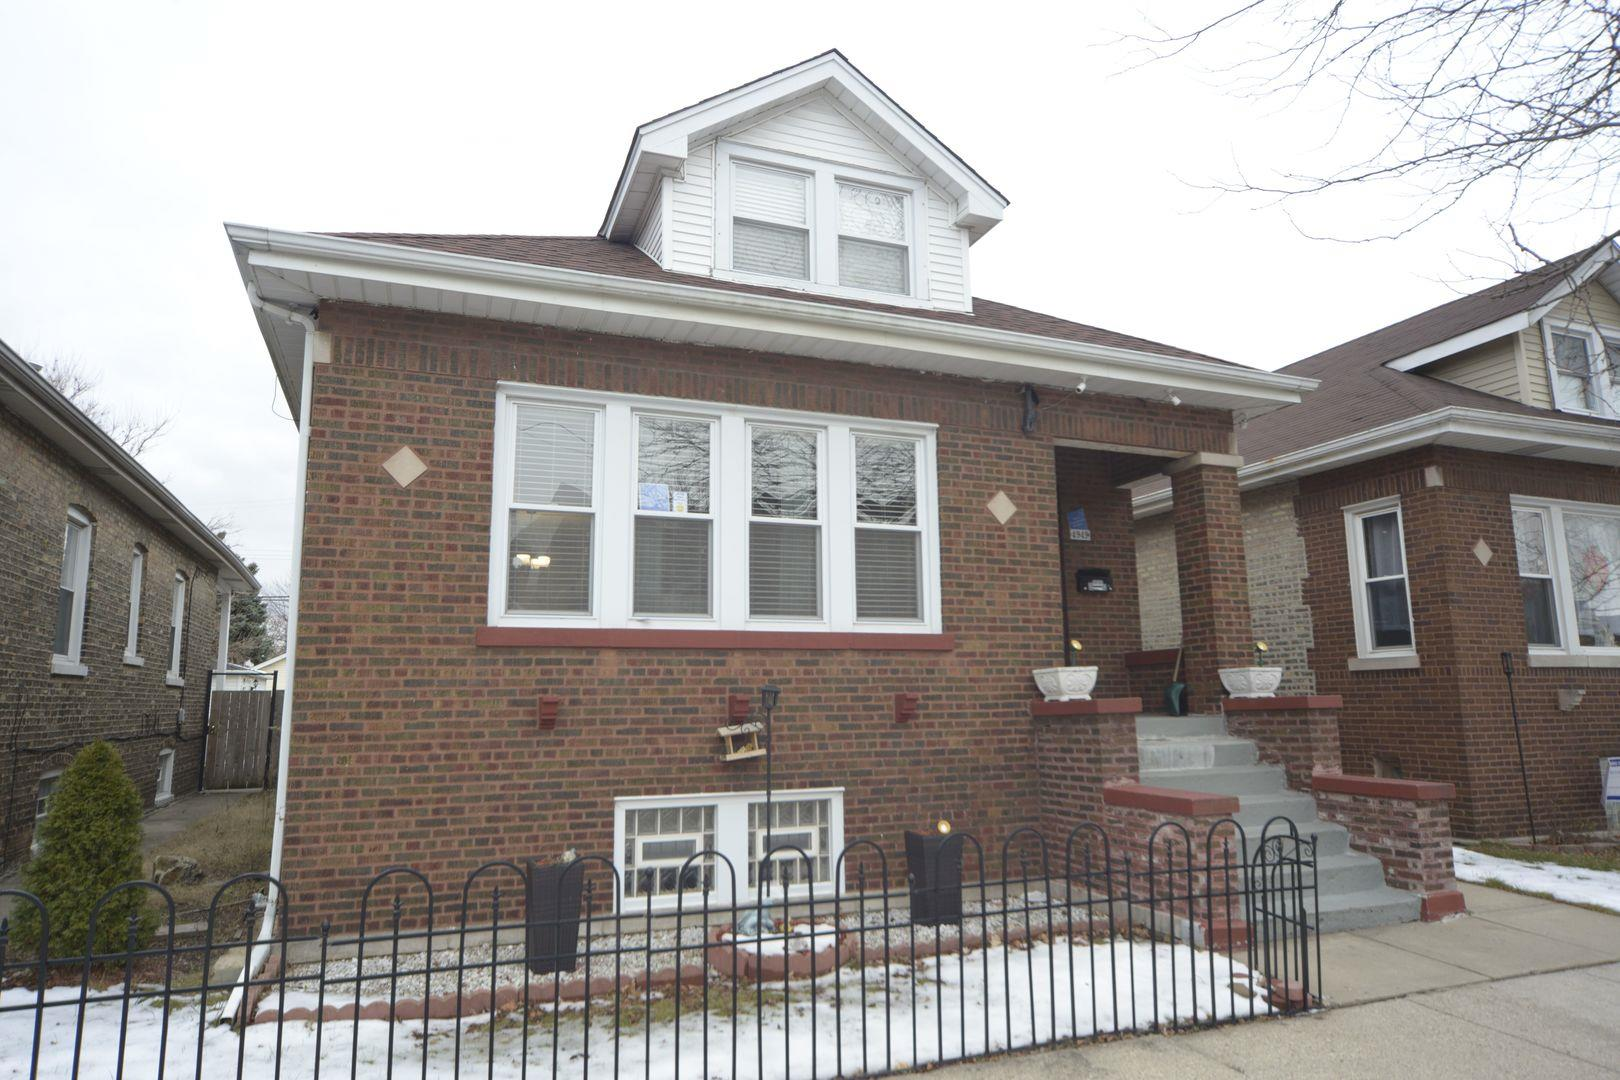 4949 W WRIGHTWOOD Avenue, Chicago, IL 60639 - #: 10967341